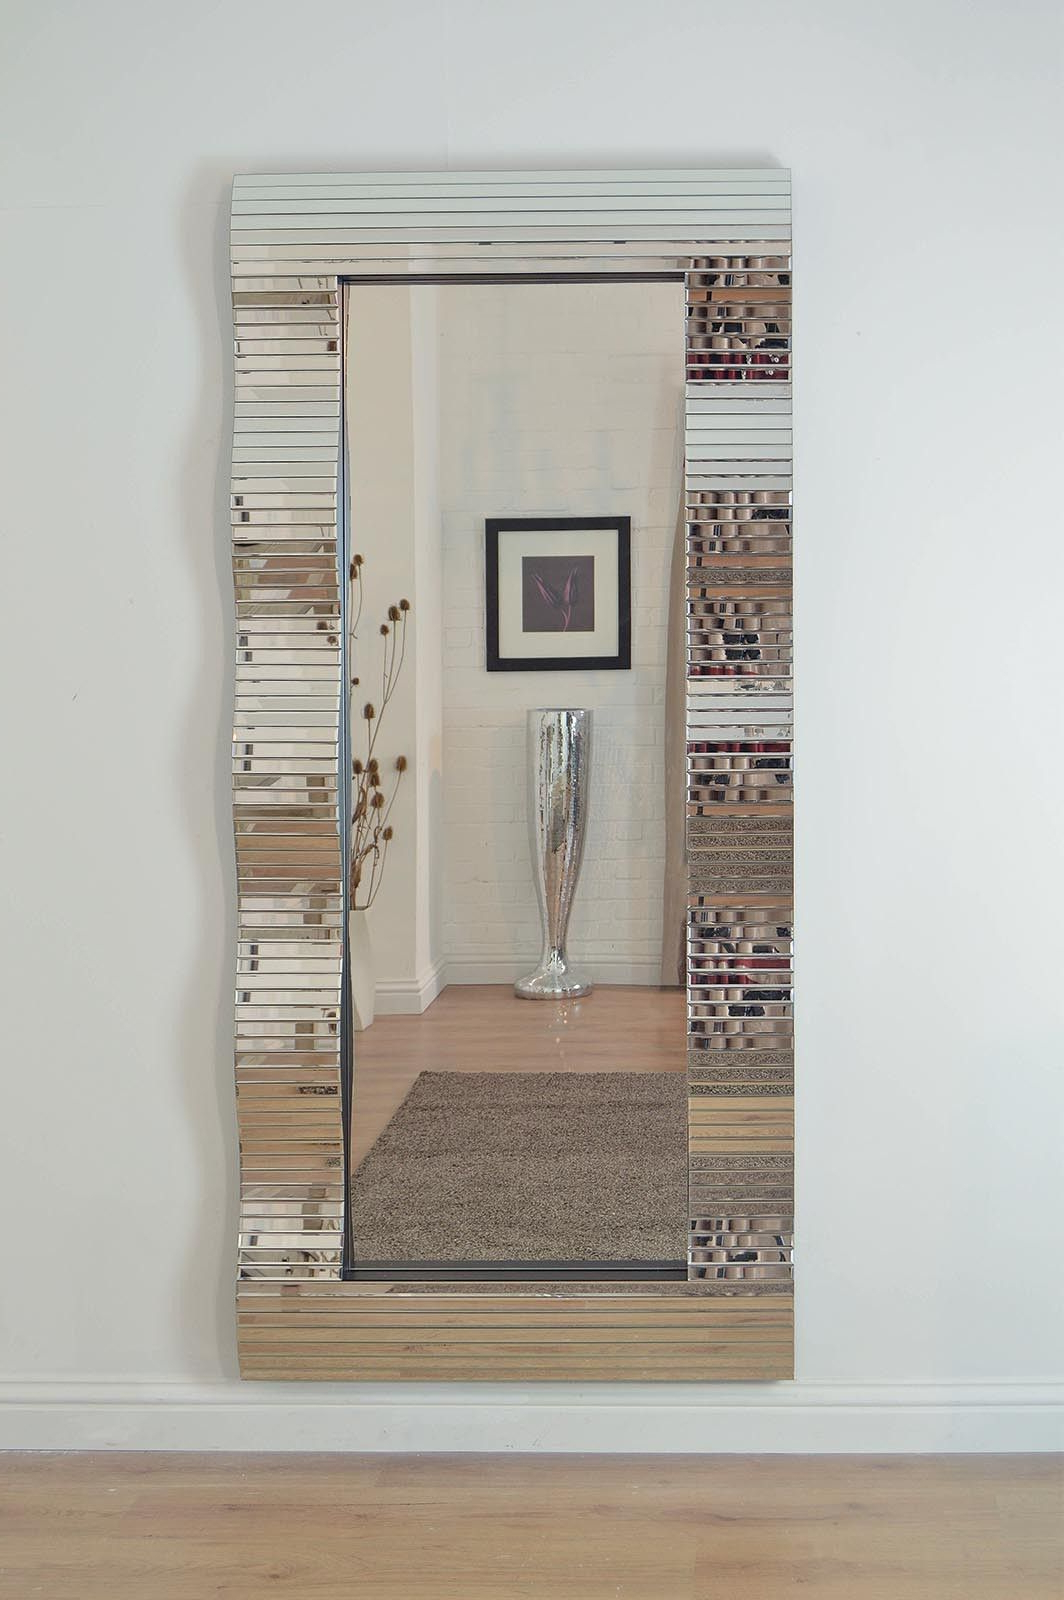 Widely Used Large Full Length Wall Mirrors Pertaining To Gorgeous Full Length Wall Mirrors (View 2 of 20)